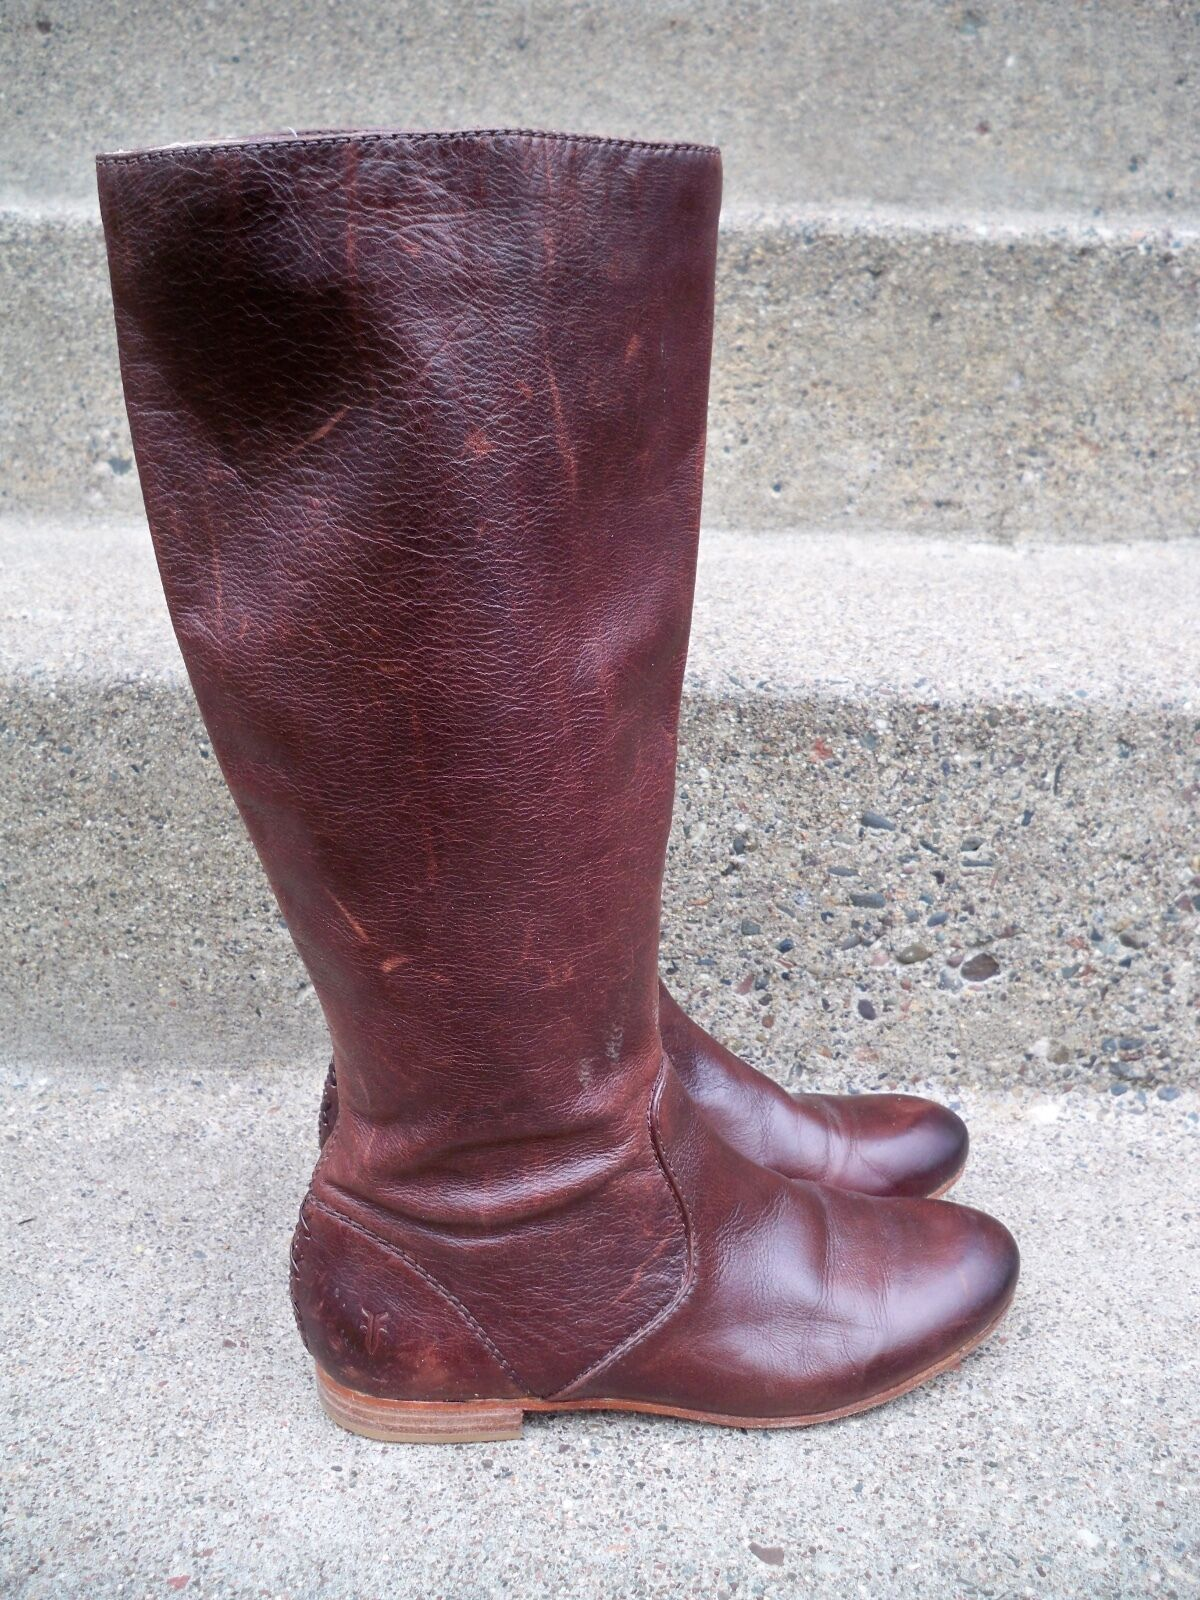 348 Frye  76010 Jillian Pull On Tall Brown Leather Womens Riding Boots Size 5.5